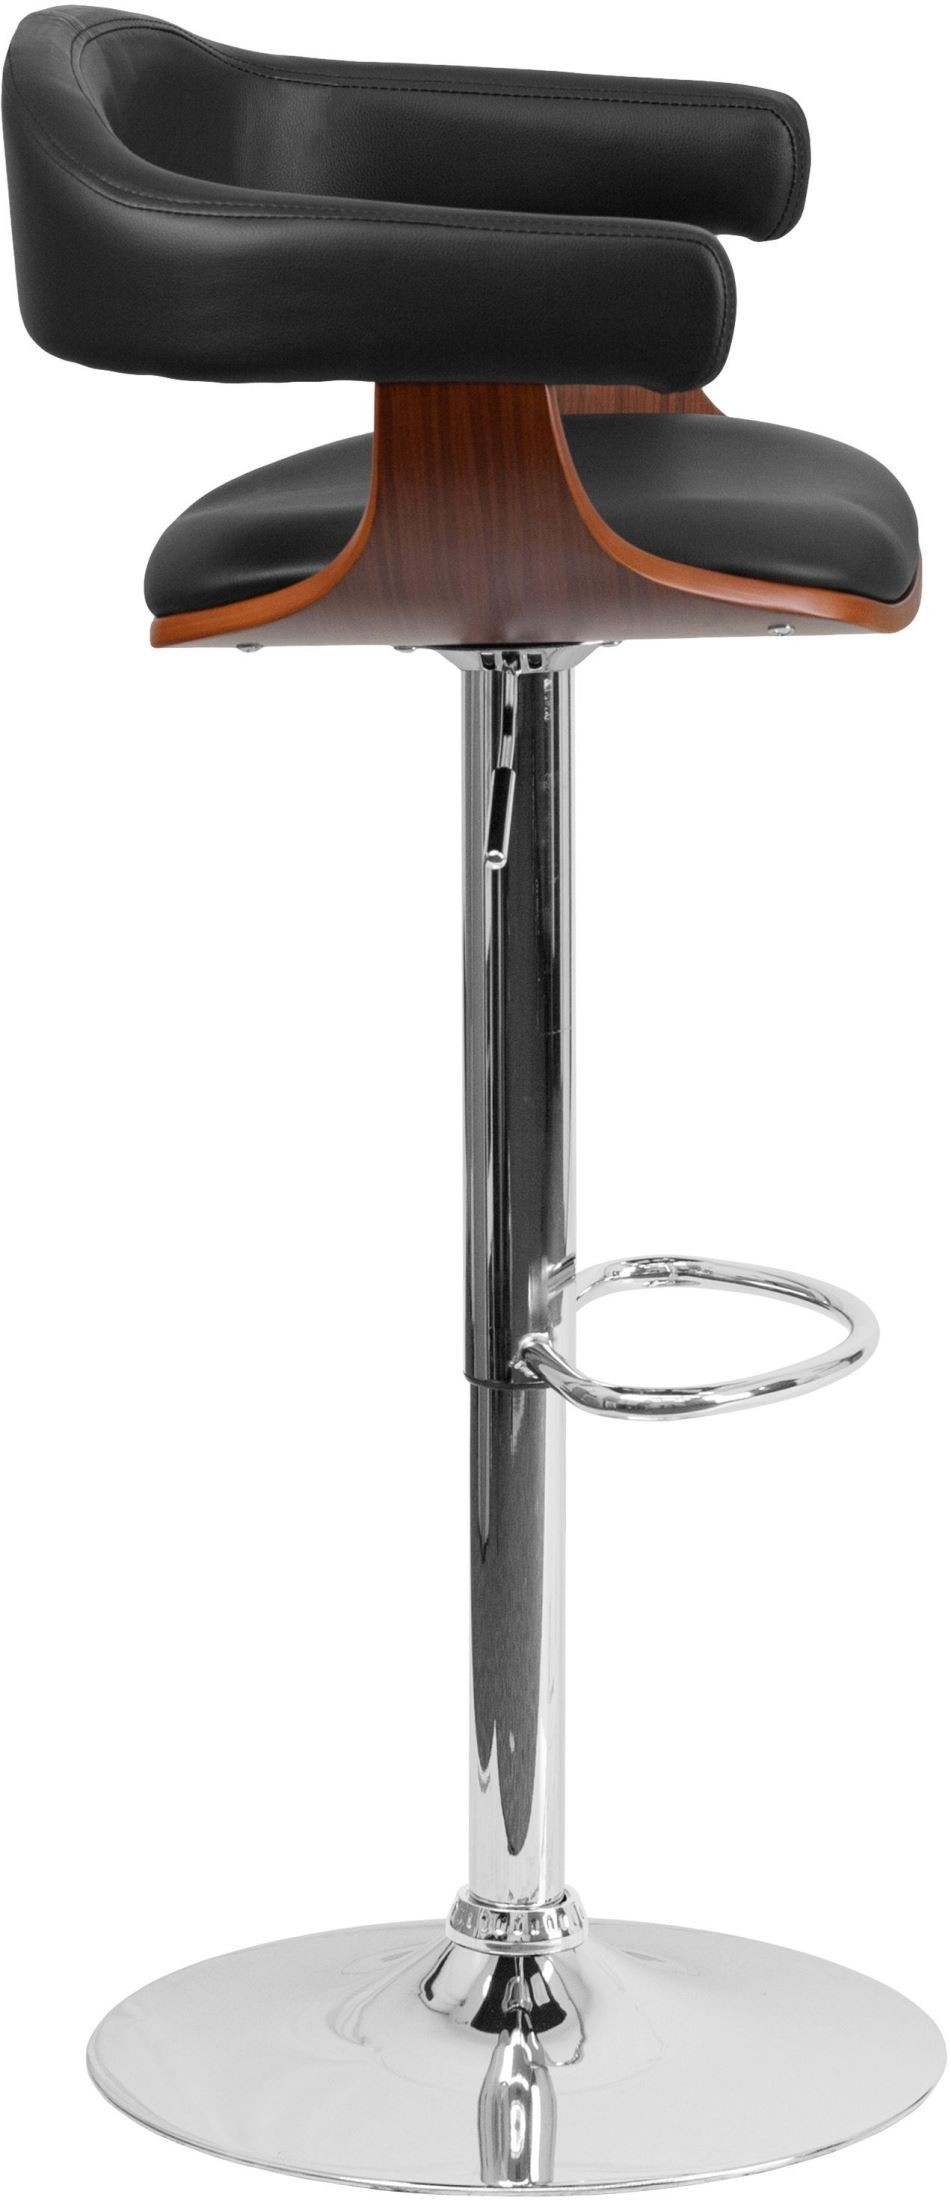 32384 Walnut Bentwood Adjustable Height Bar Stool From